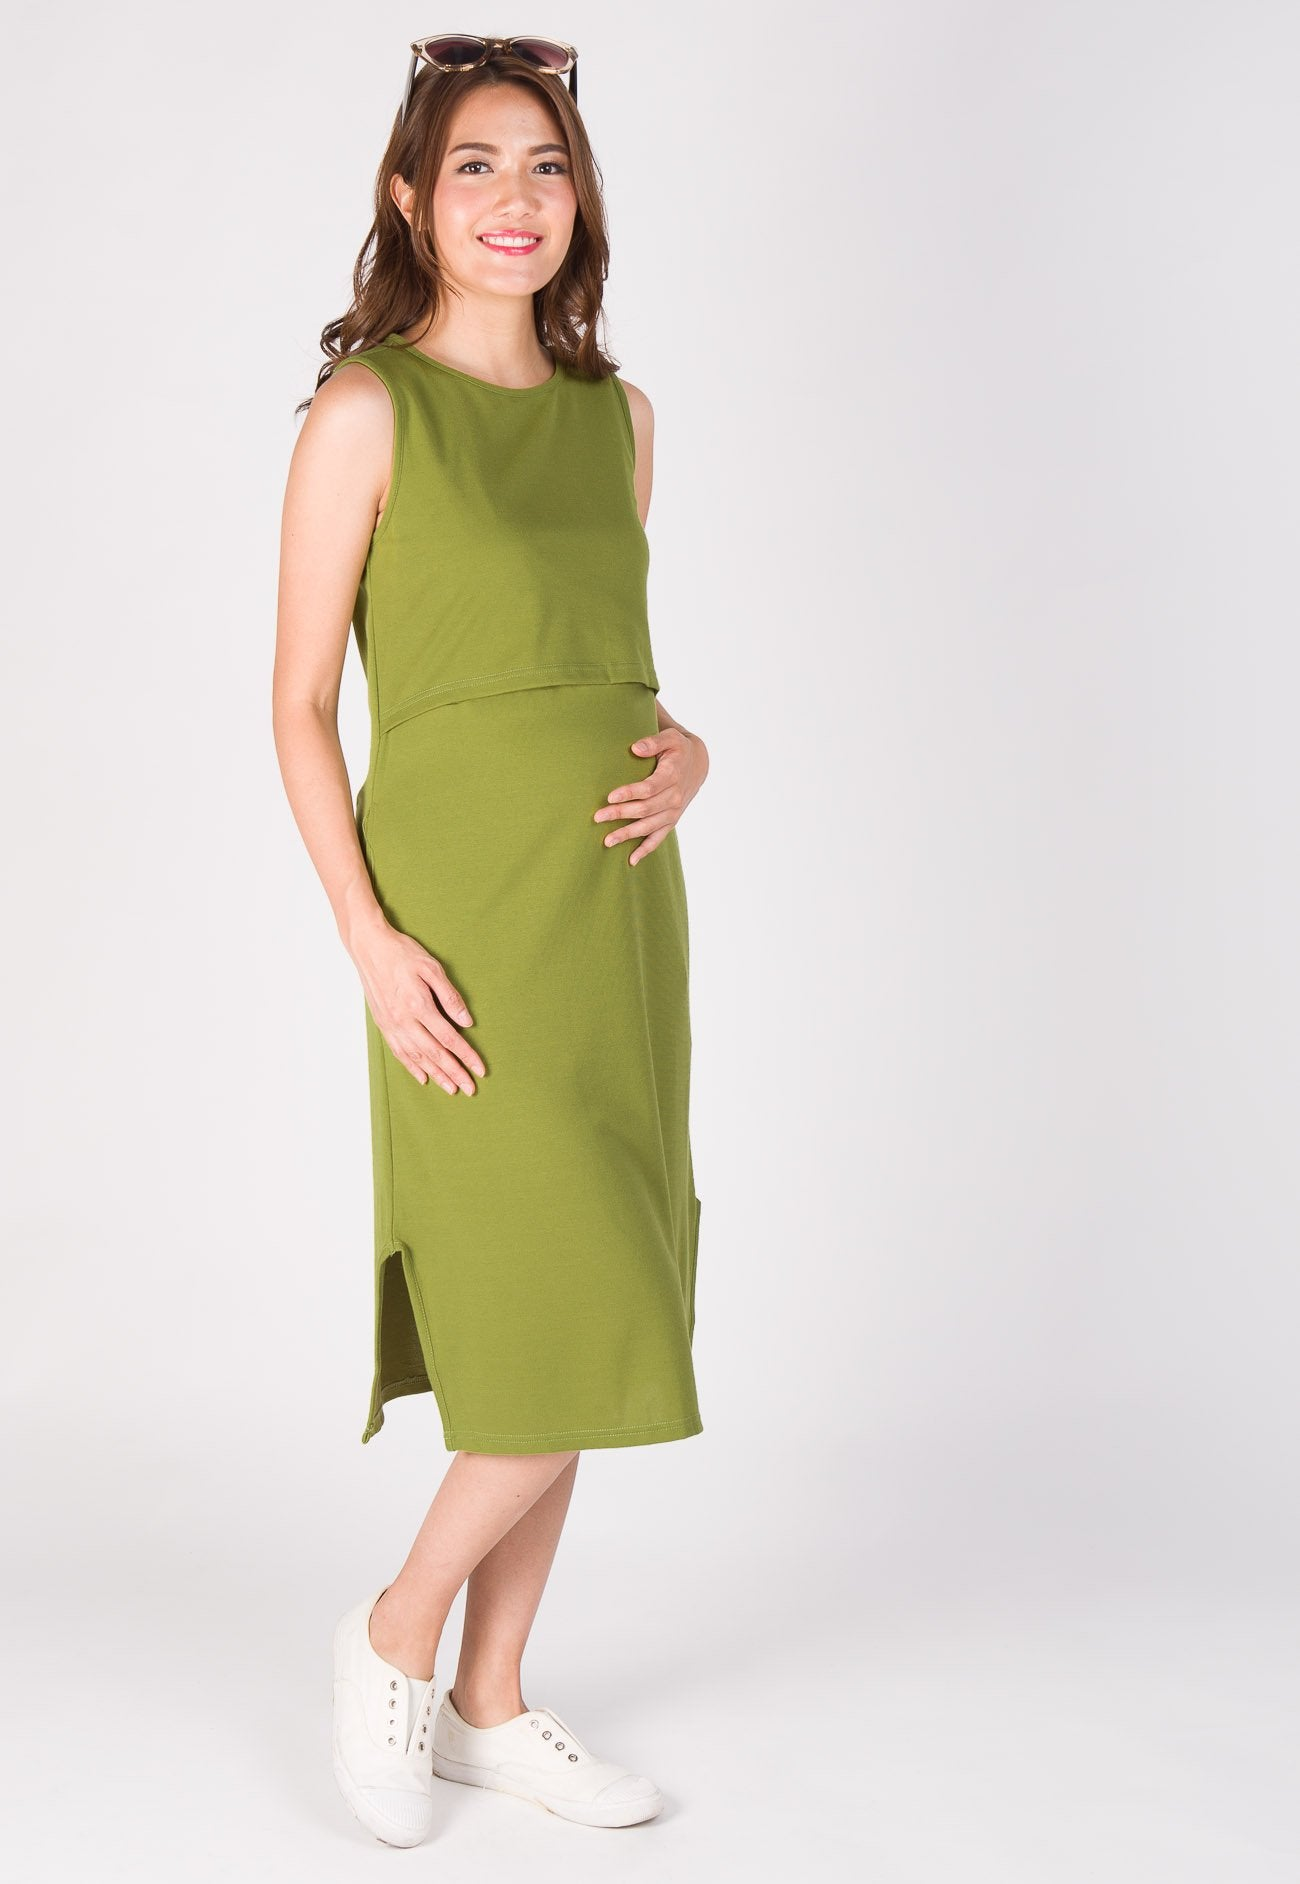 Sleek Slit Nursing Dress in Green Nursing Wear Mothercot